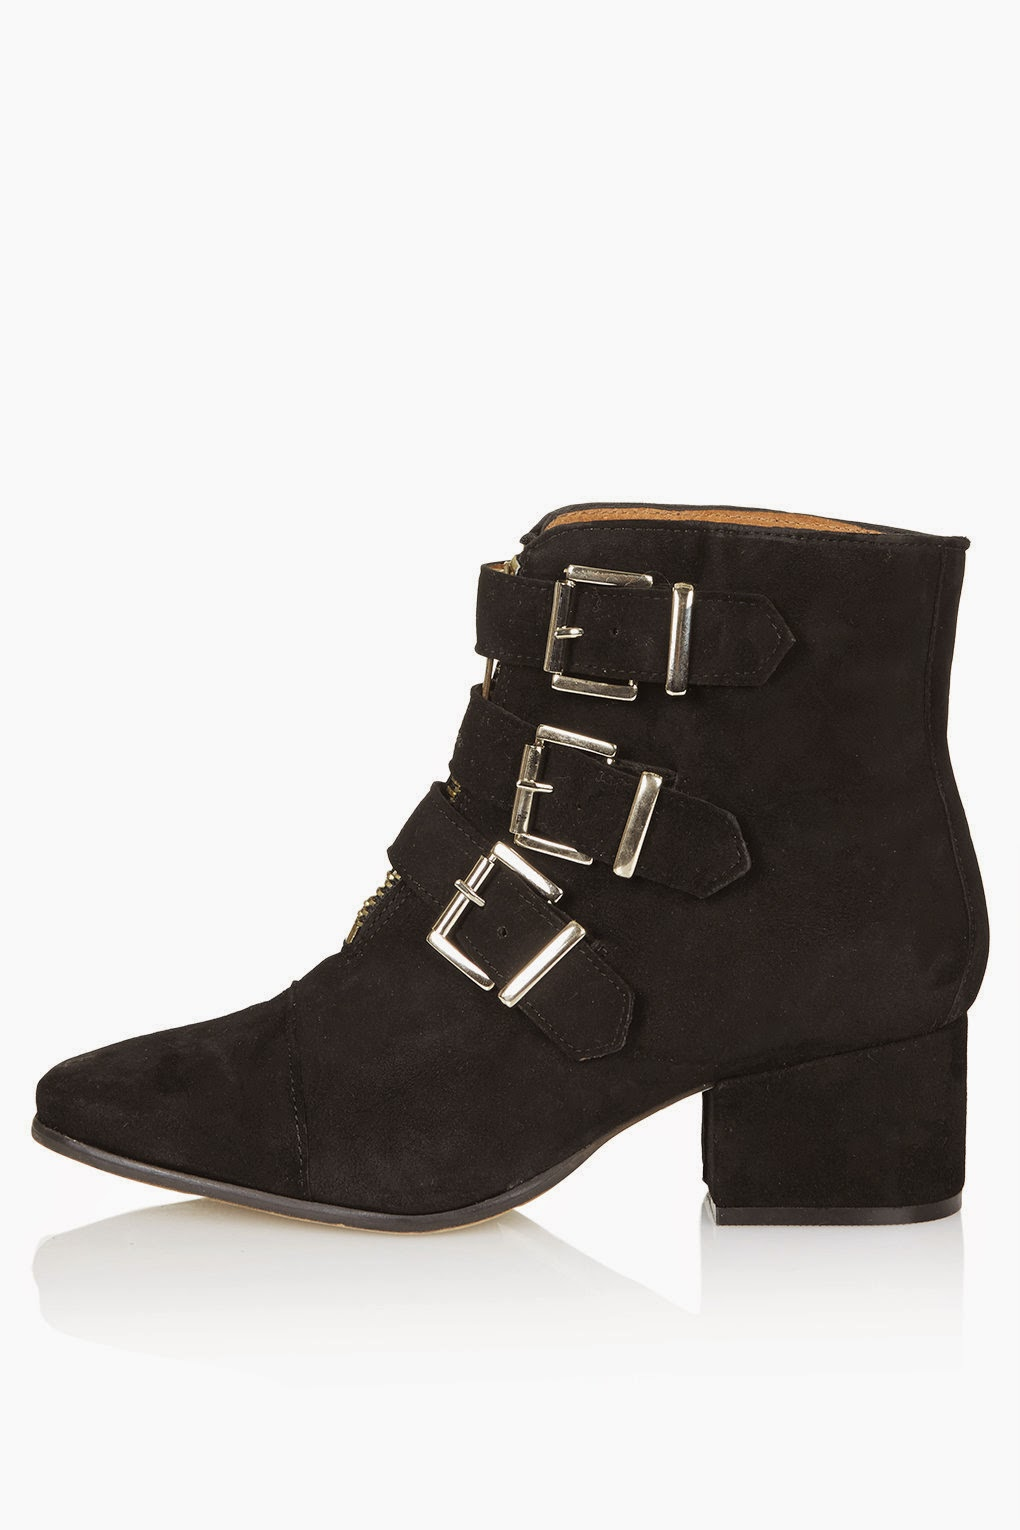 black suede buckled boot